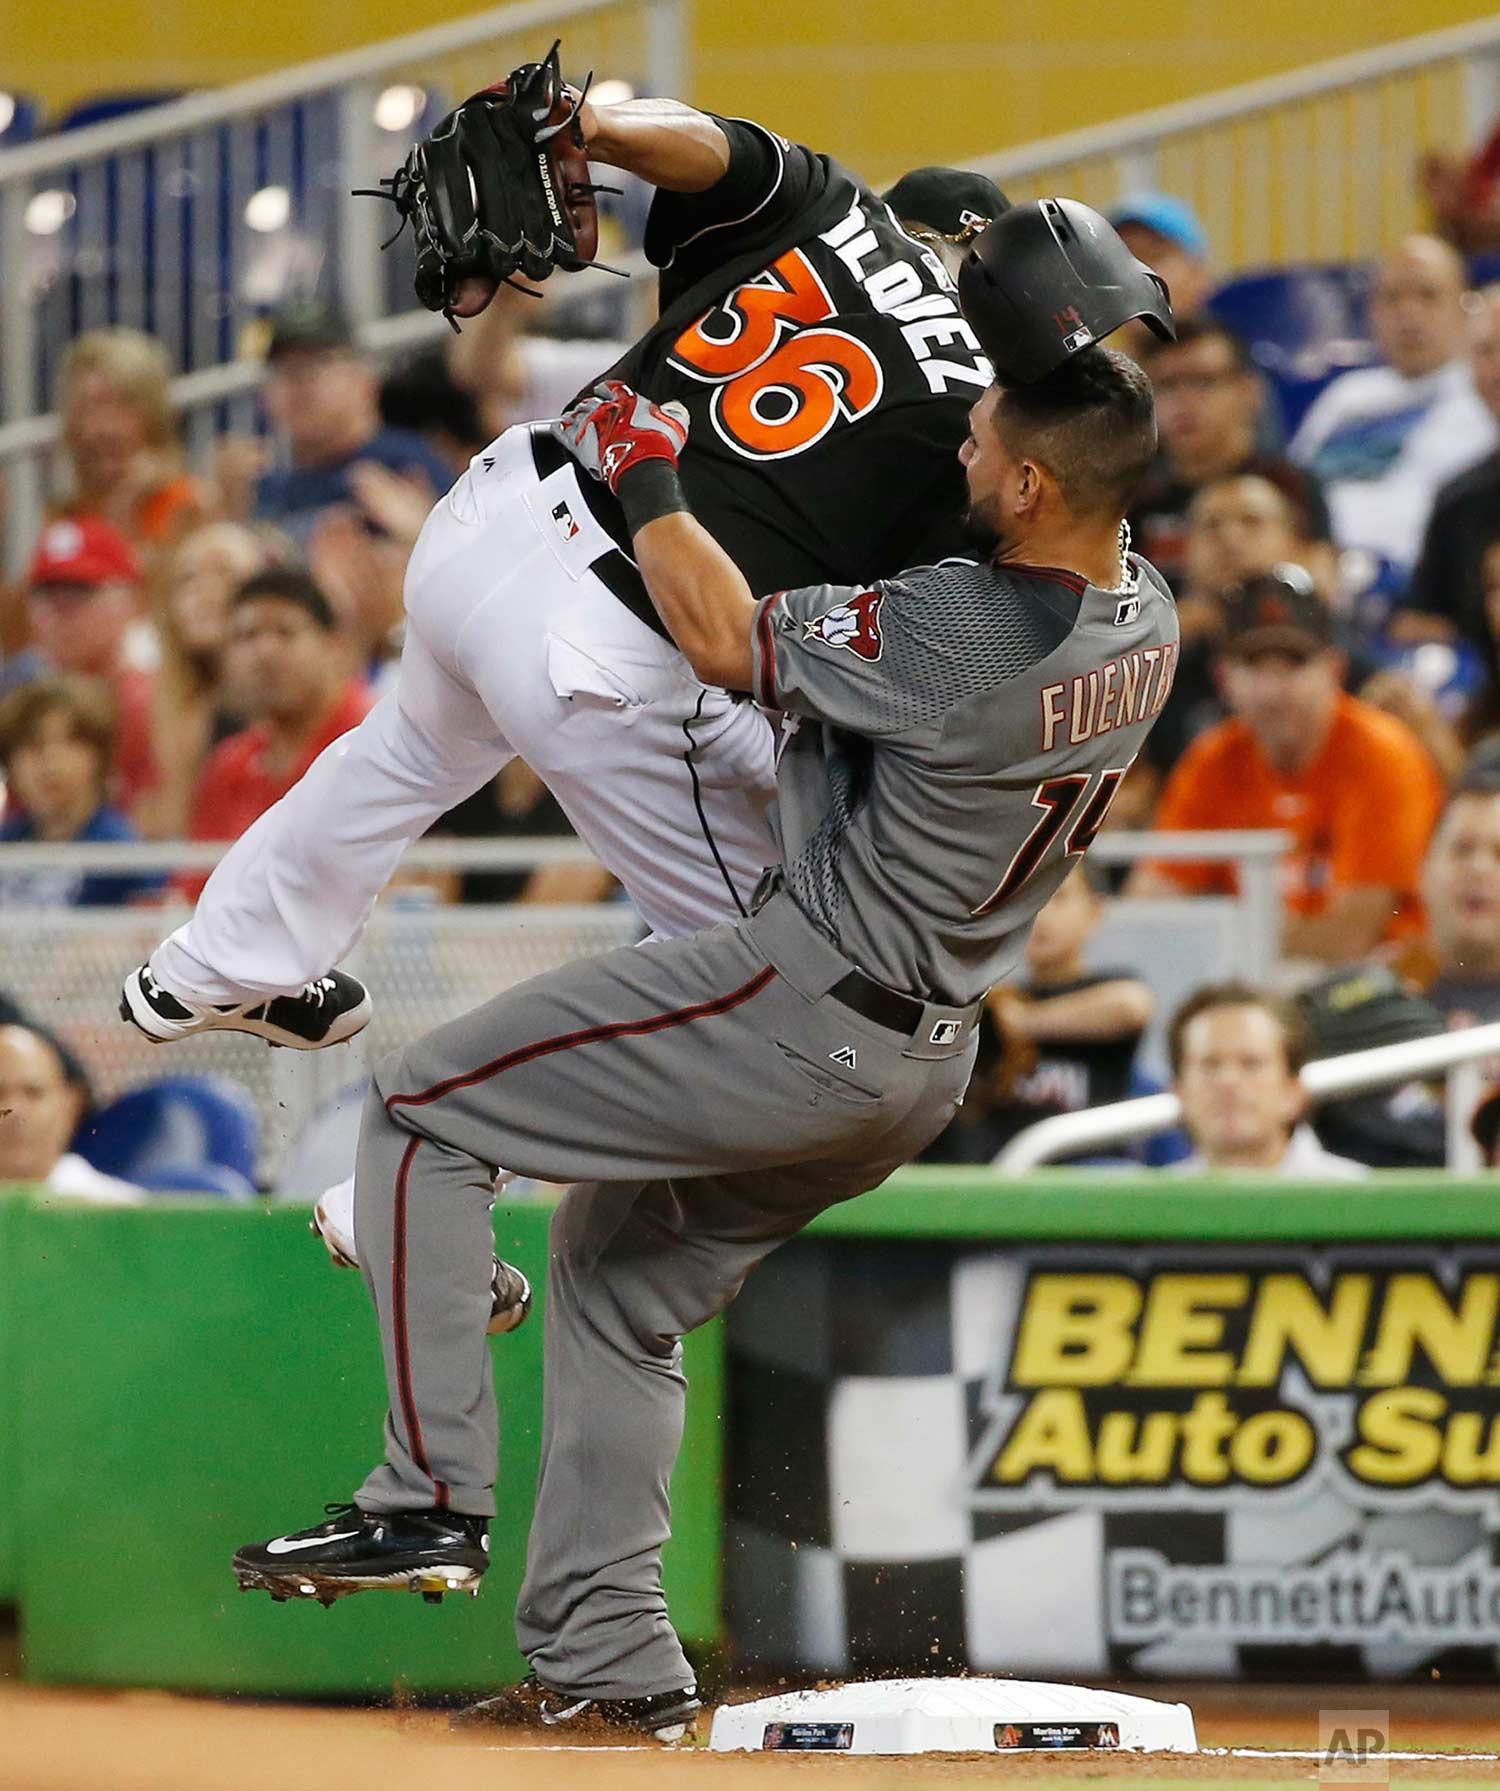 Arizona Diamondbacks' Reymond Fuentes (14) collides with Miami Marlins starting pitcher Edinson Volquez (36) after Volquez tagged first base for the out during the first inning of a baseball game, Saturday, June 3, 2017, in Miami. (AP Photo/Wilfredo Lee)